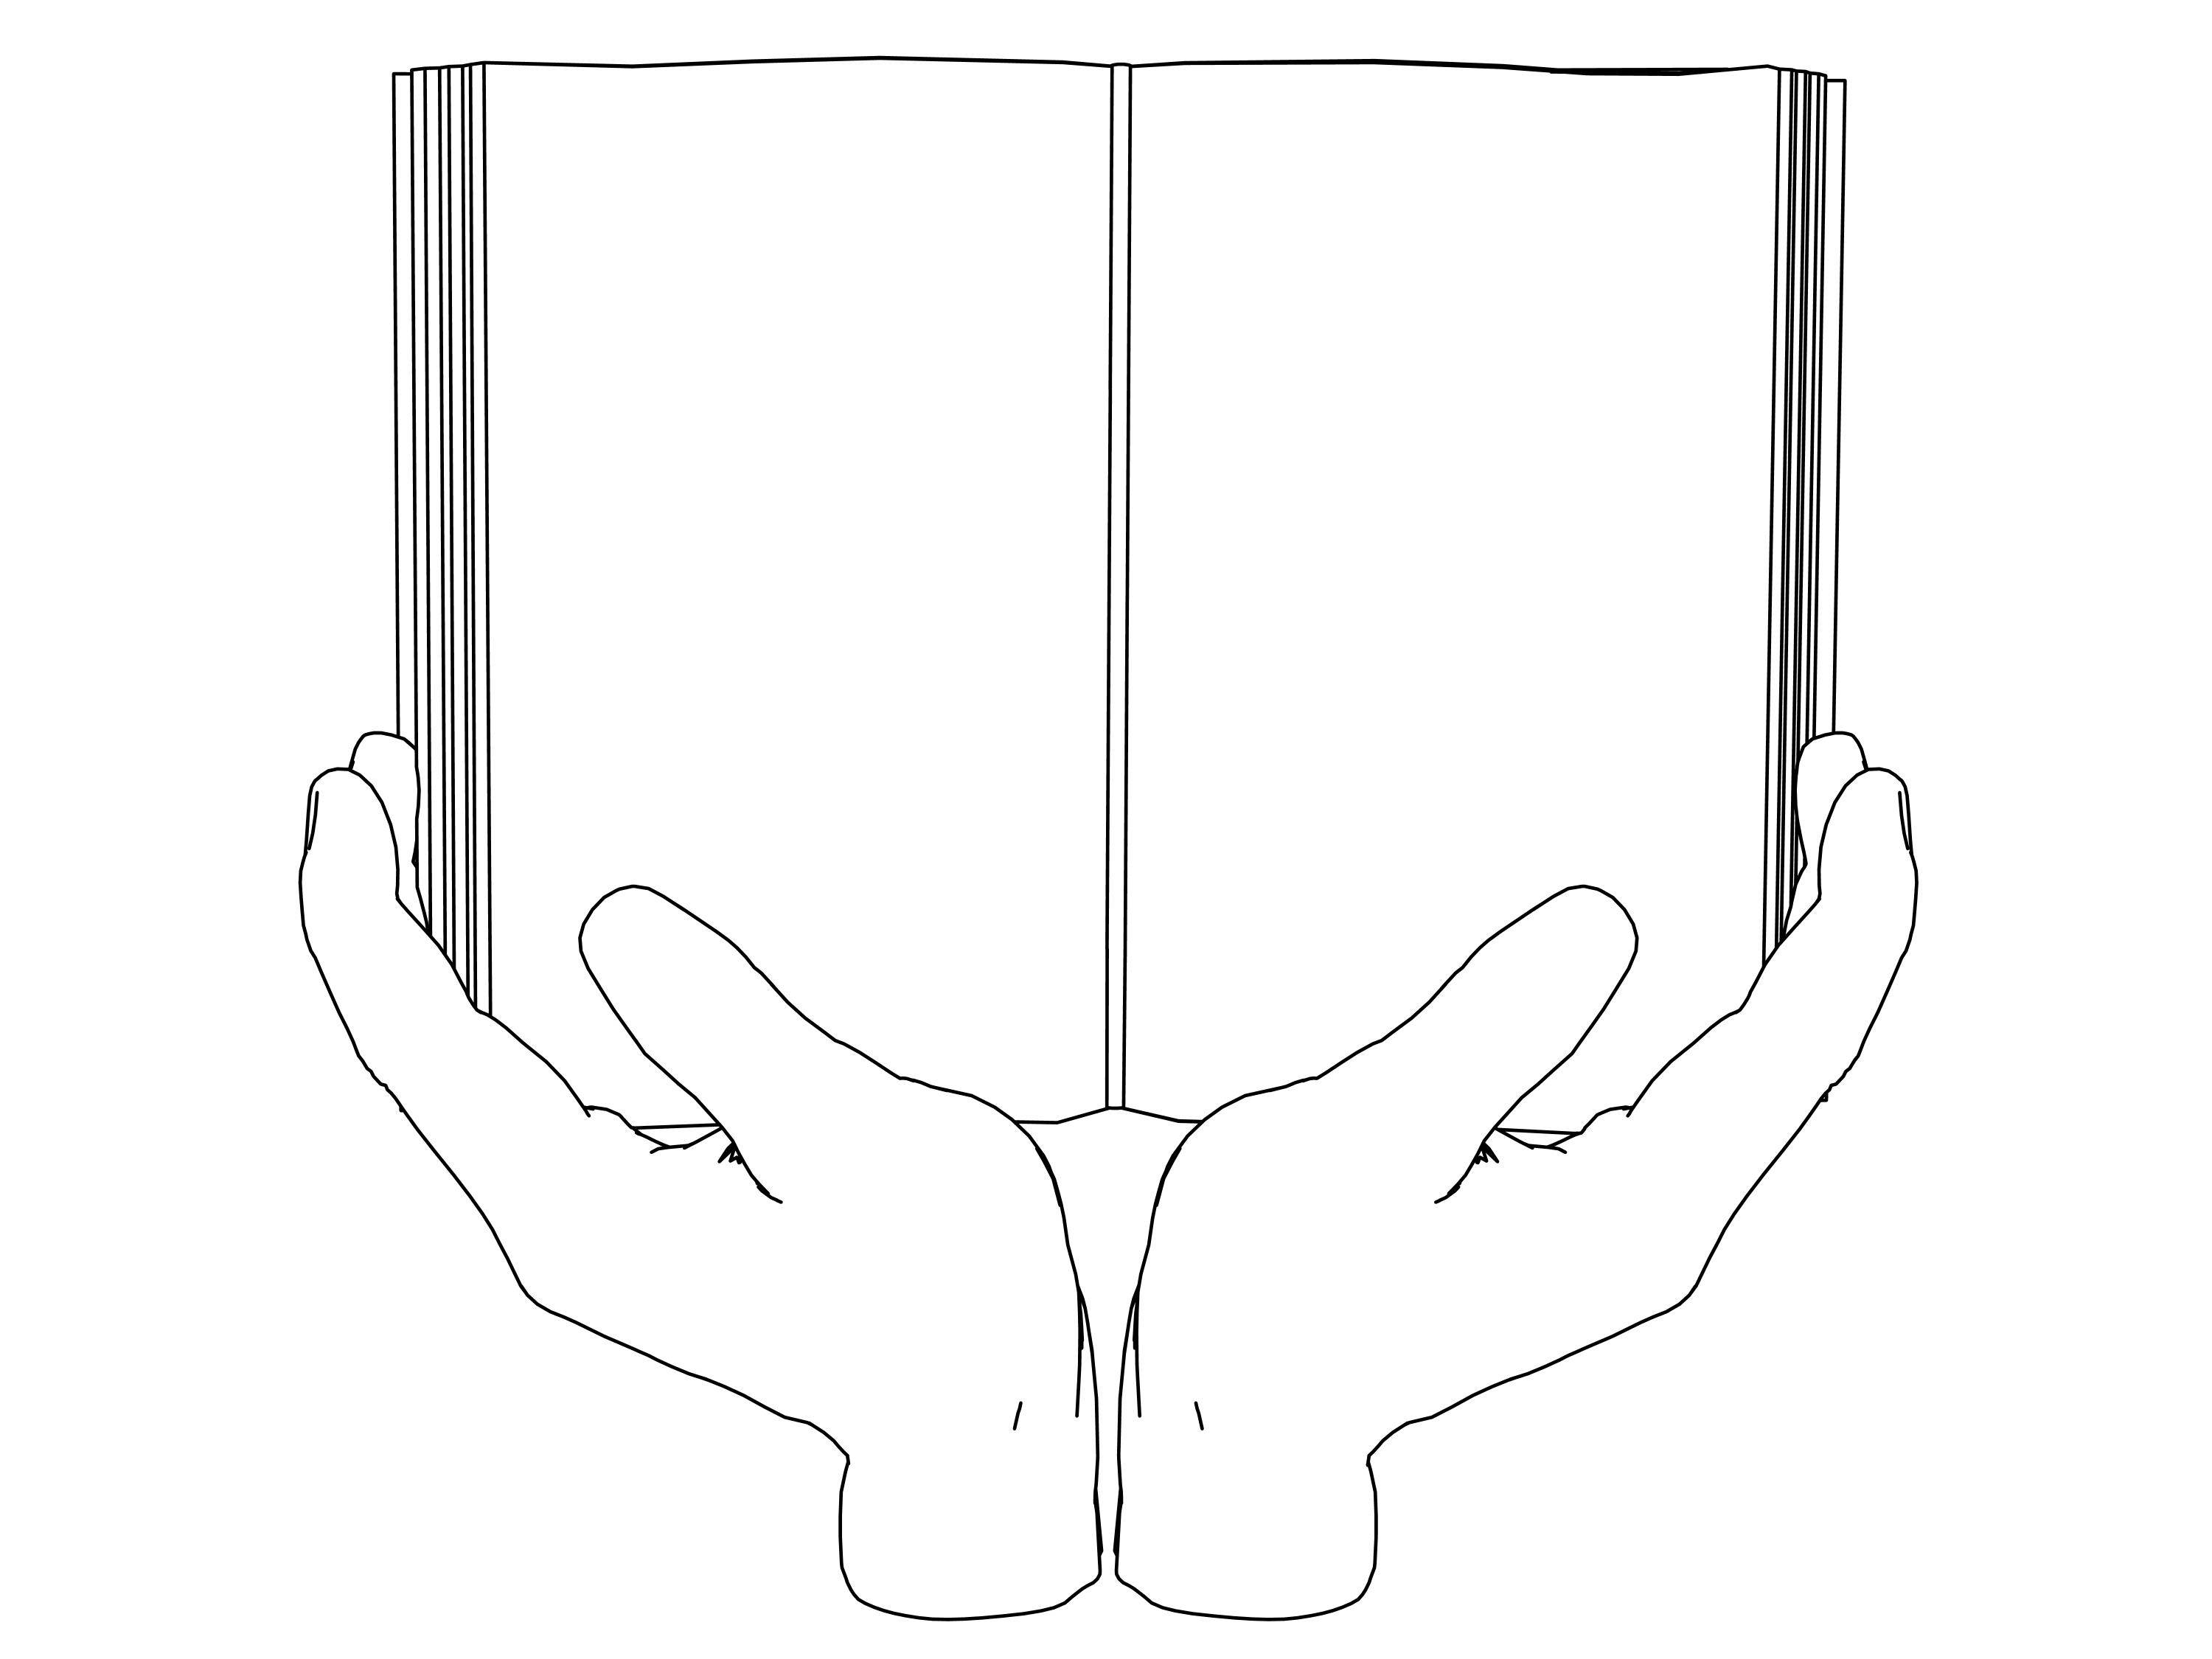 The Book On Hand Coloring Page